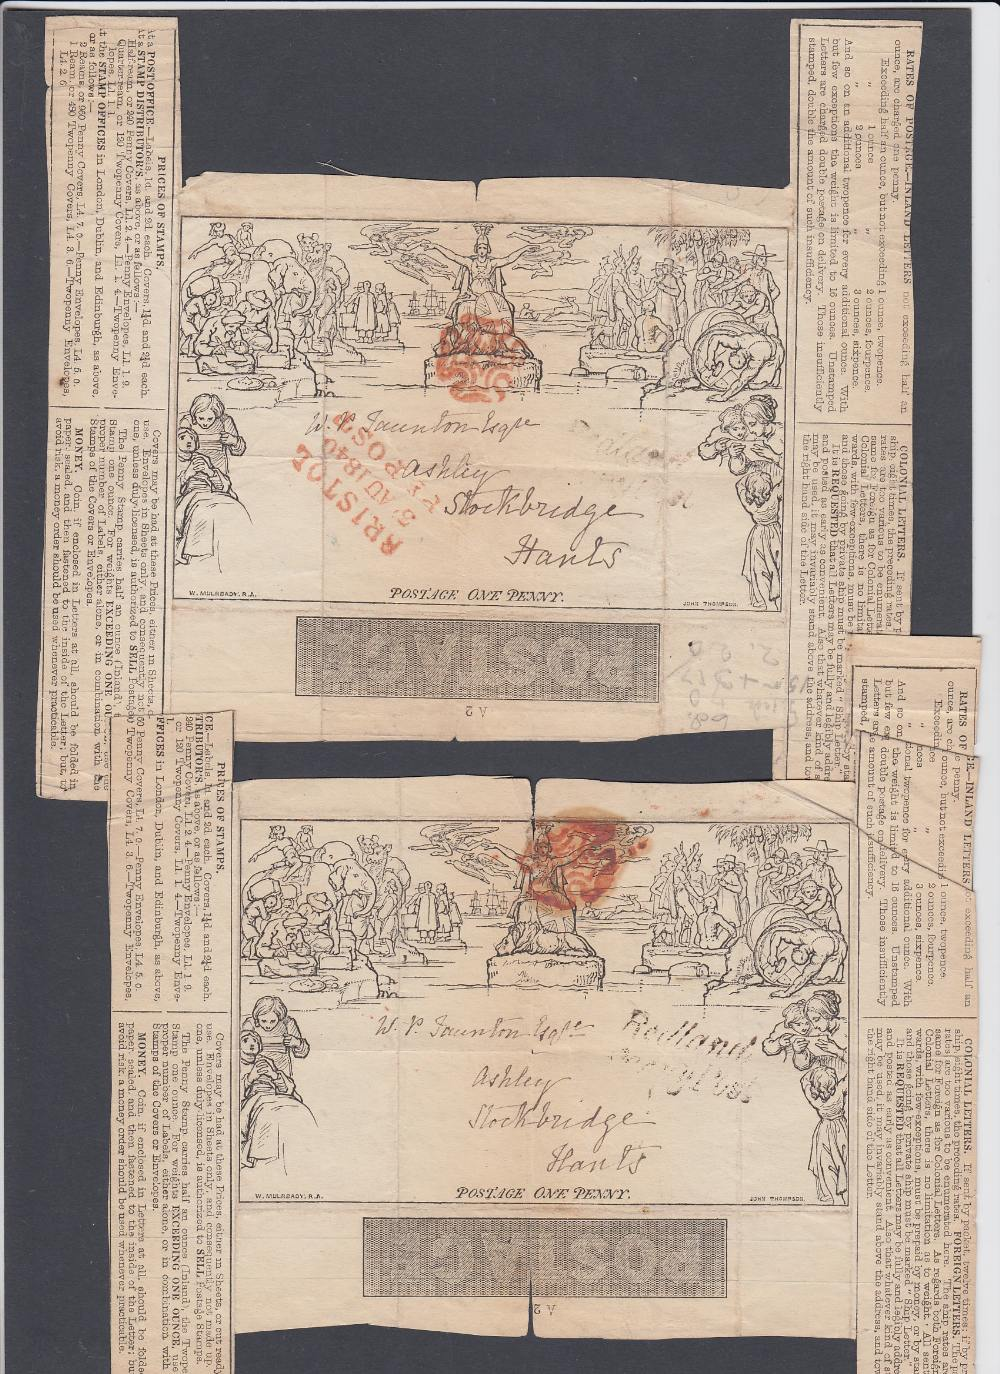 GREAT BRITAIN POSTAL HISTORY Two part Mulready letter sheets both with red MX cancels